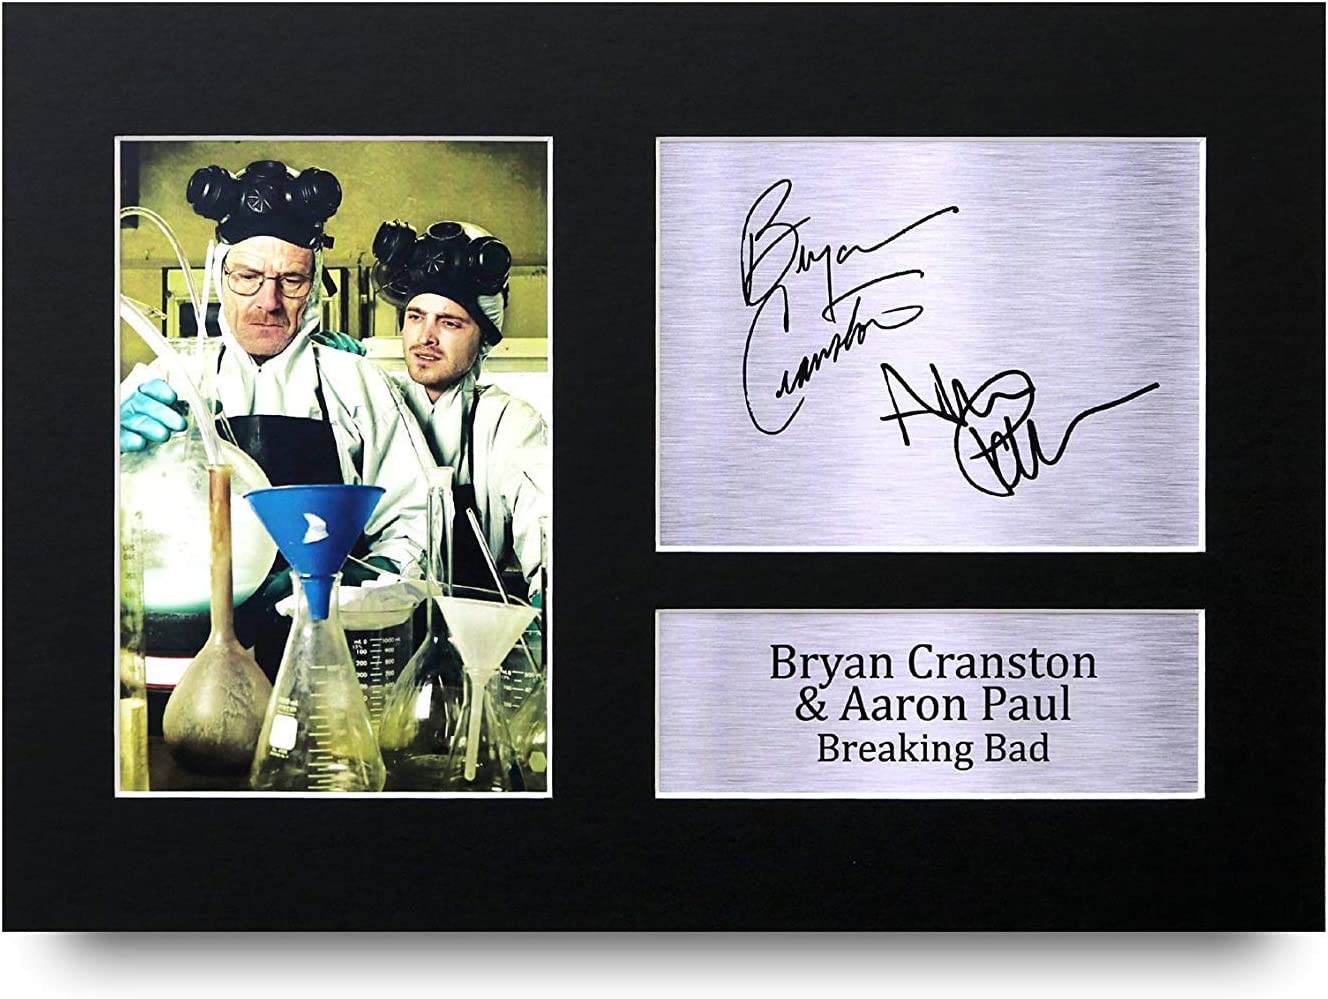 HWC Trading Breaking Bad A4 Encadr/é Sign/é Image Autographe Imprim/é Impression Photo Cadeau DAffichage pour Bryan Cranston Aaron Paul TV Show Ventilateurs